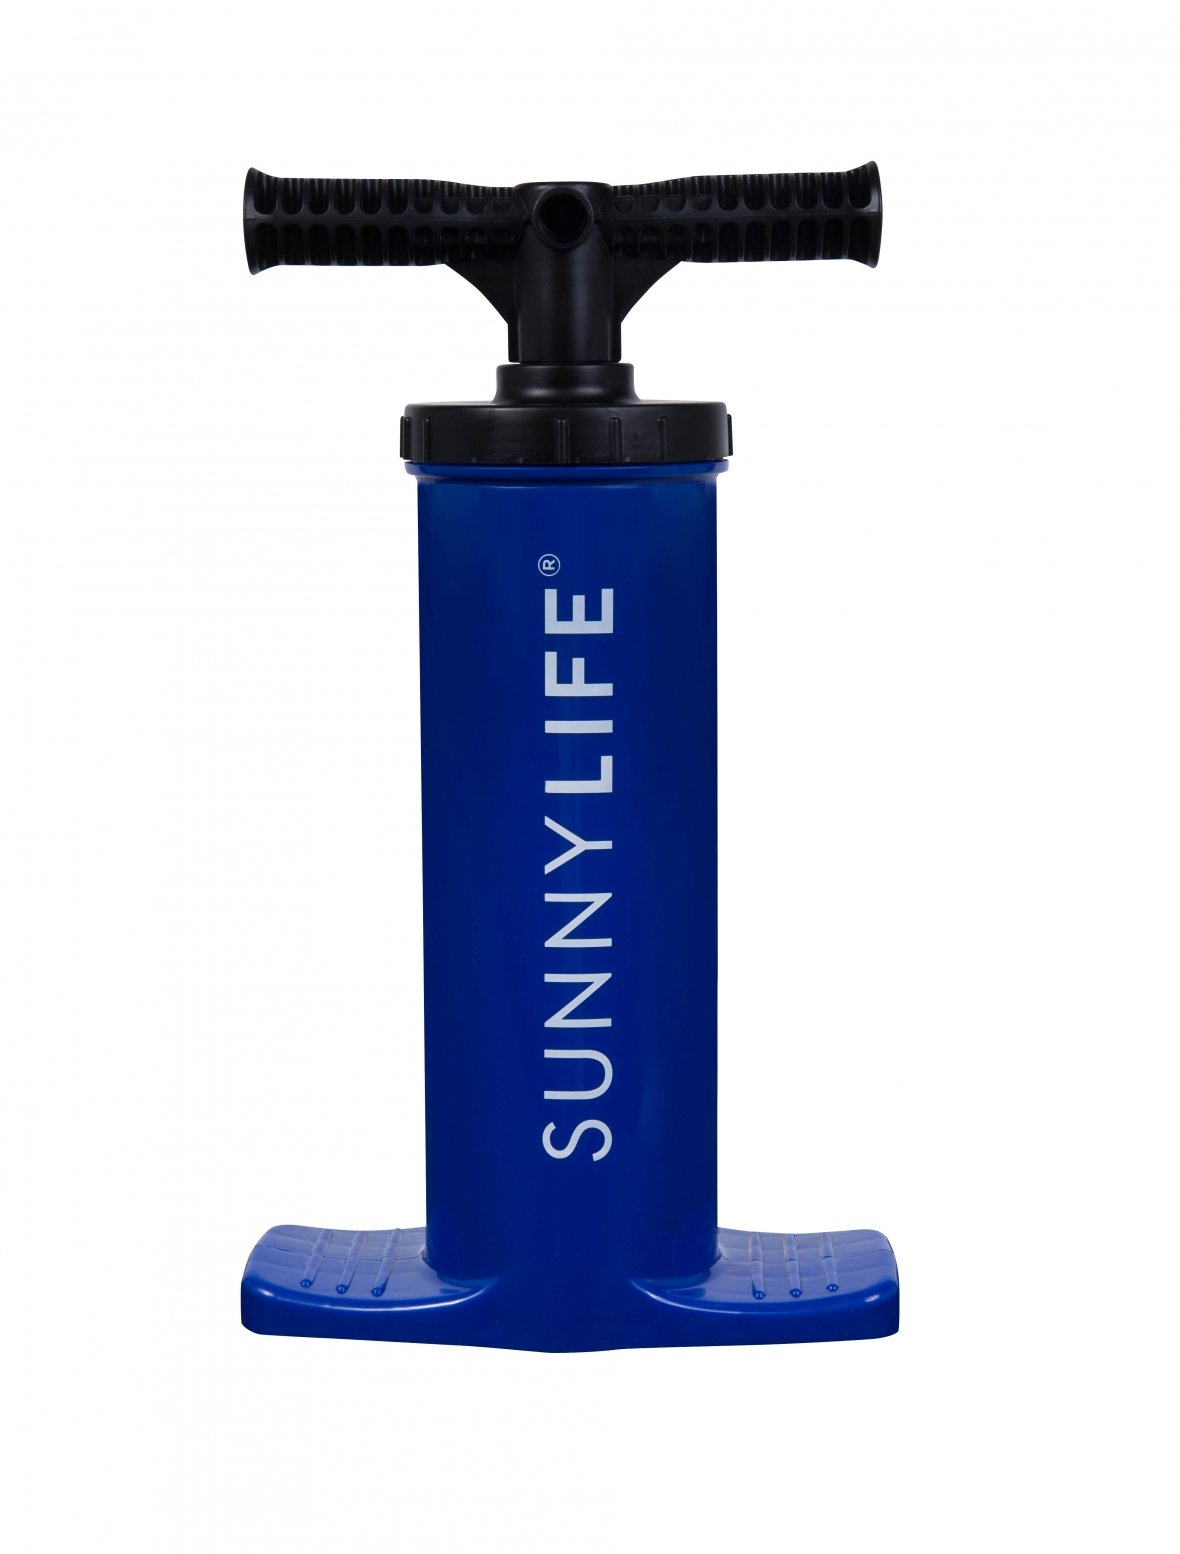 Hand air pump – Mazarine Blue